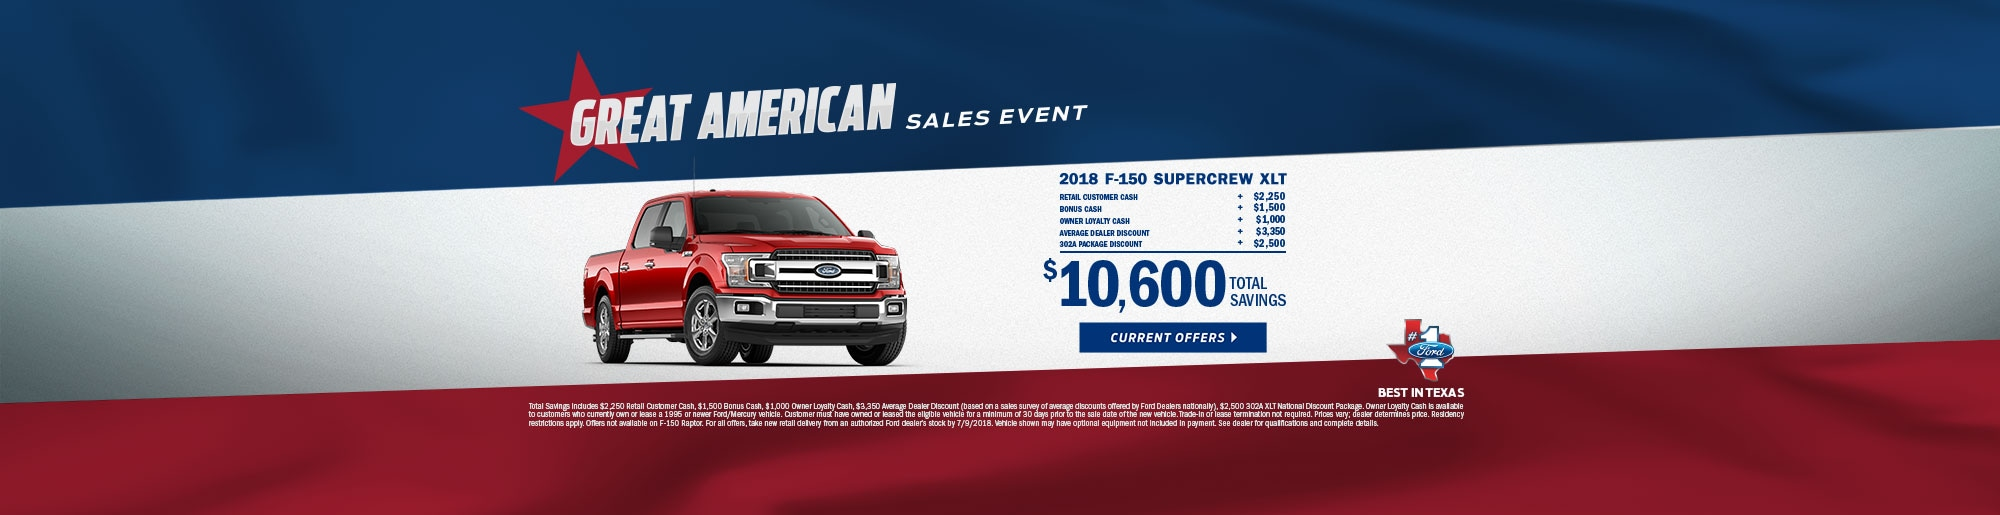 Ford Dealership Midland Tx >> Rogers Ford Sales Inc.   Ford Dealership in Midland TX